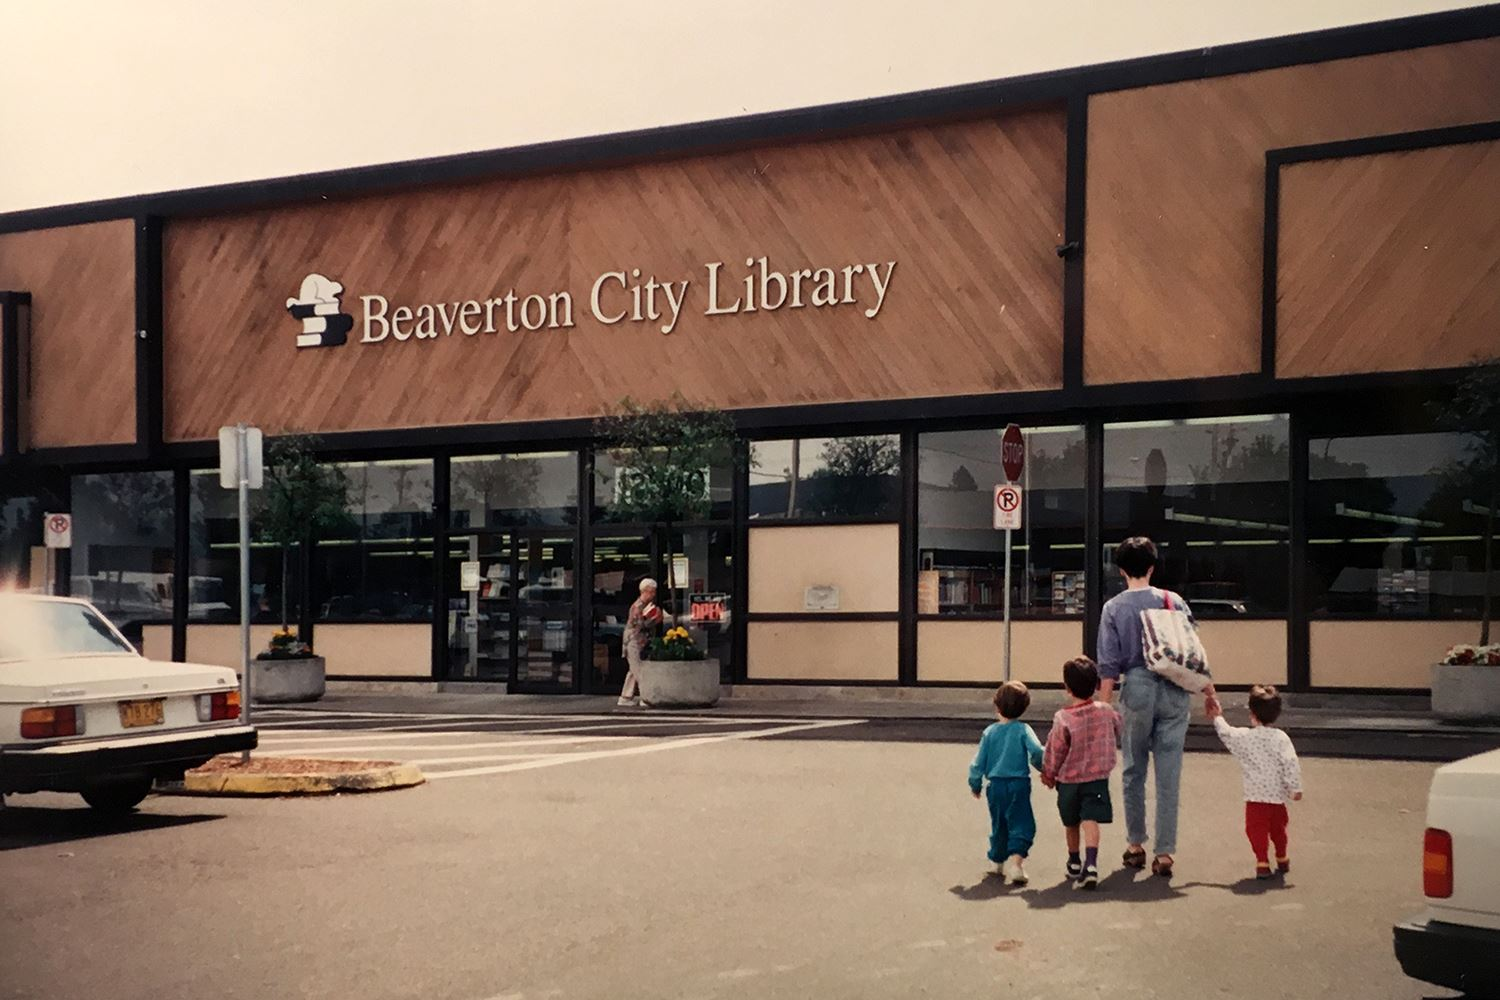 beaverton-city-library-hall-allen-exterior-1980